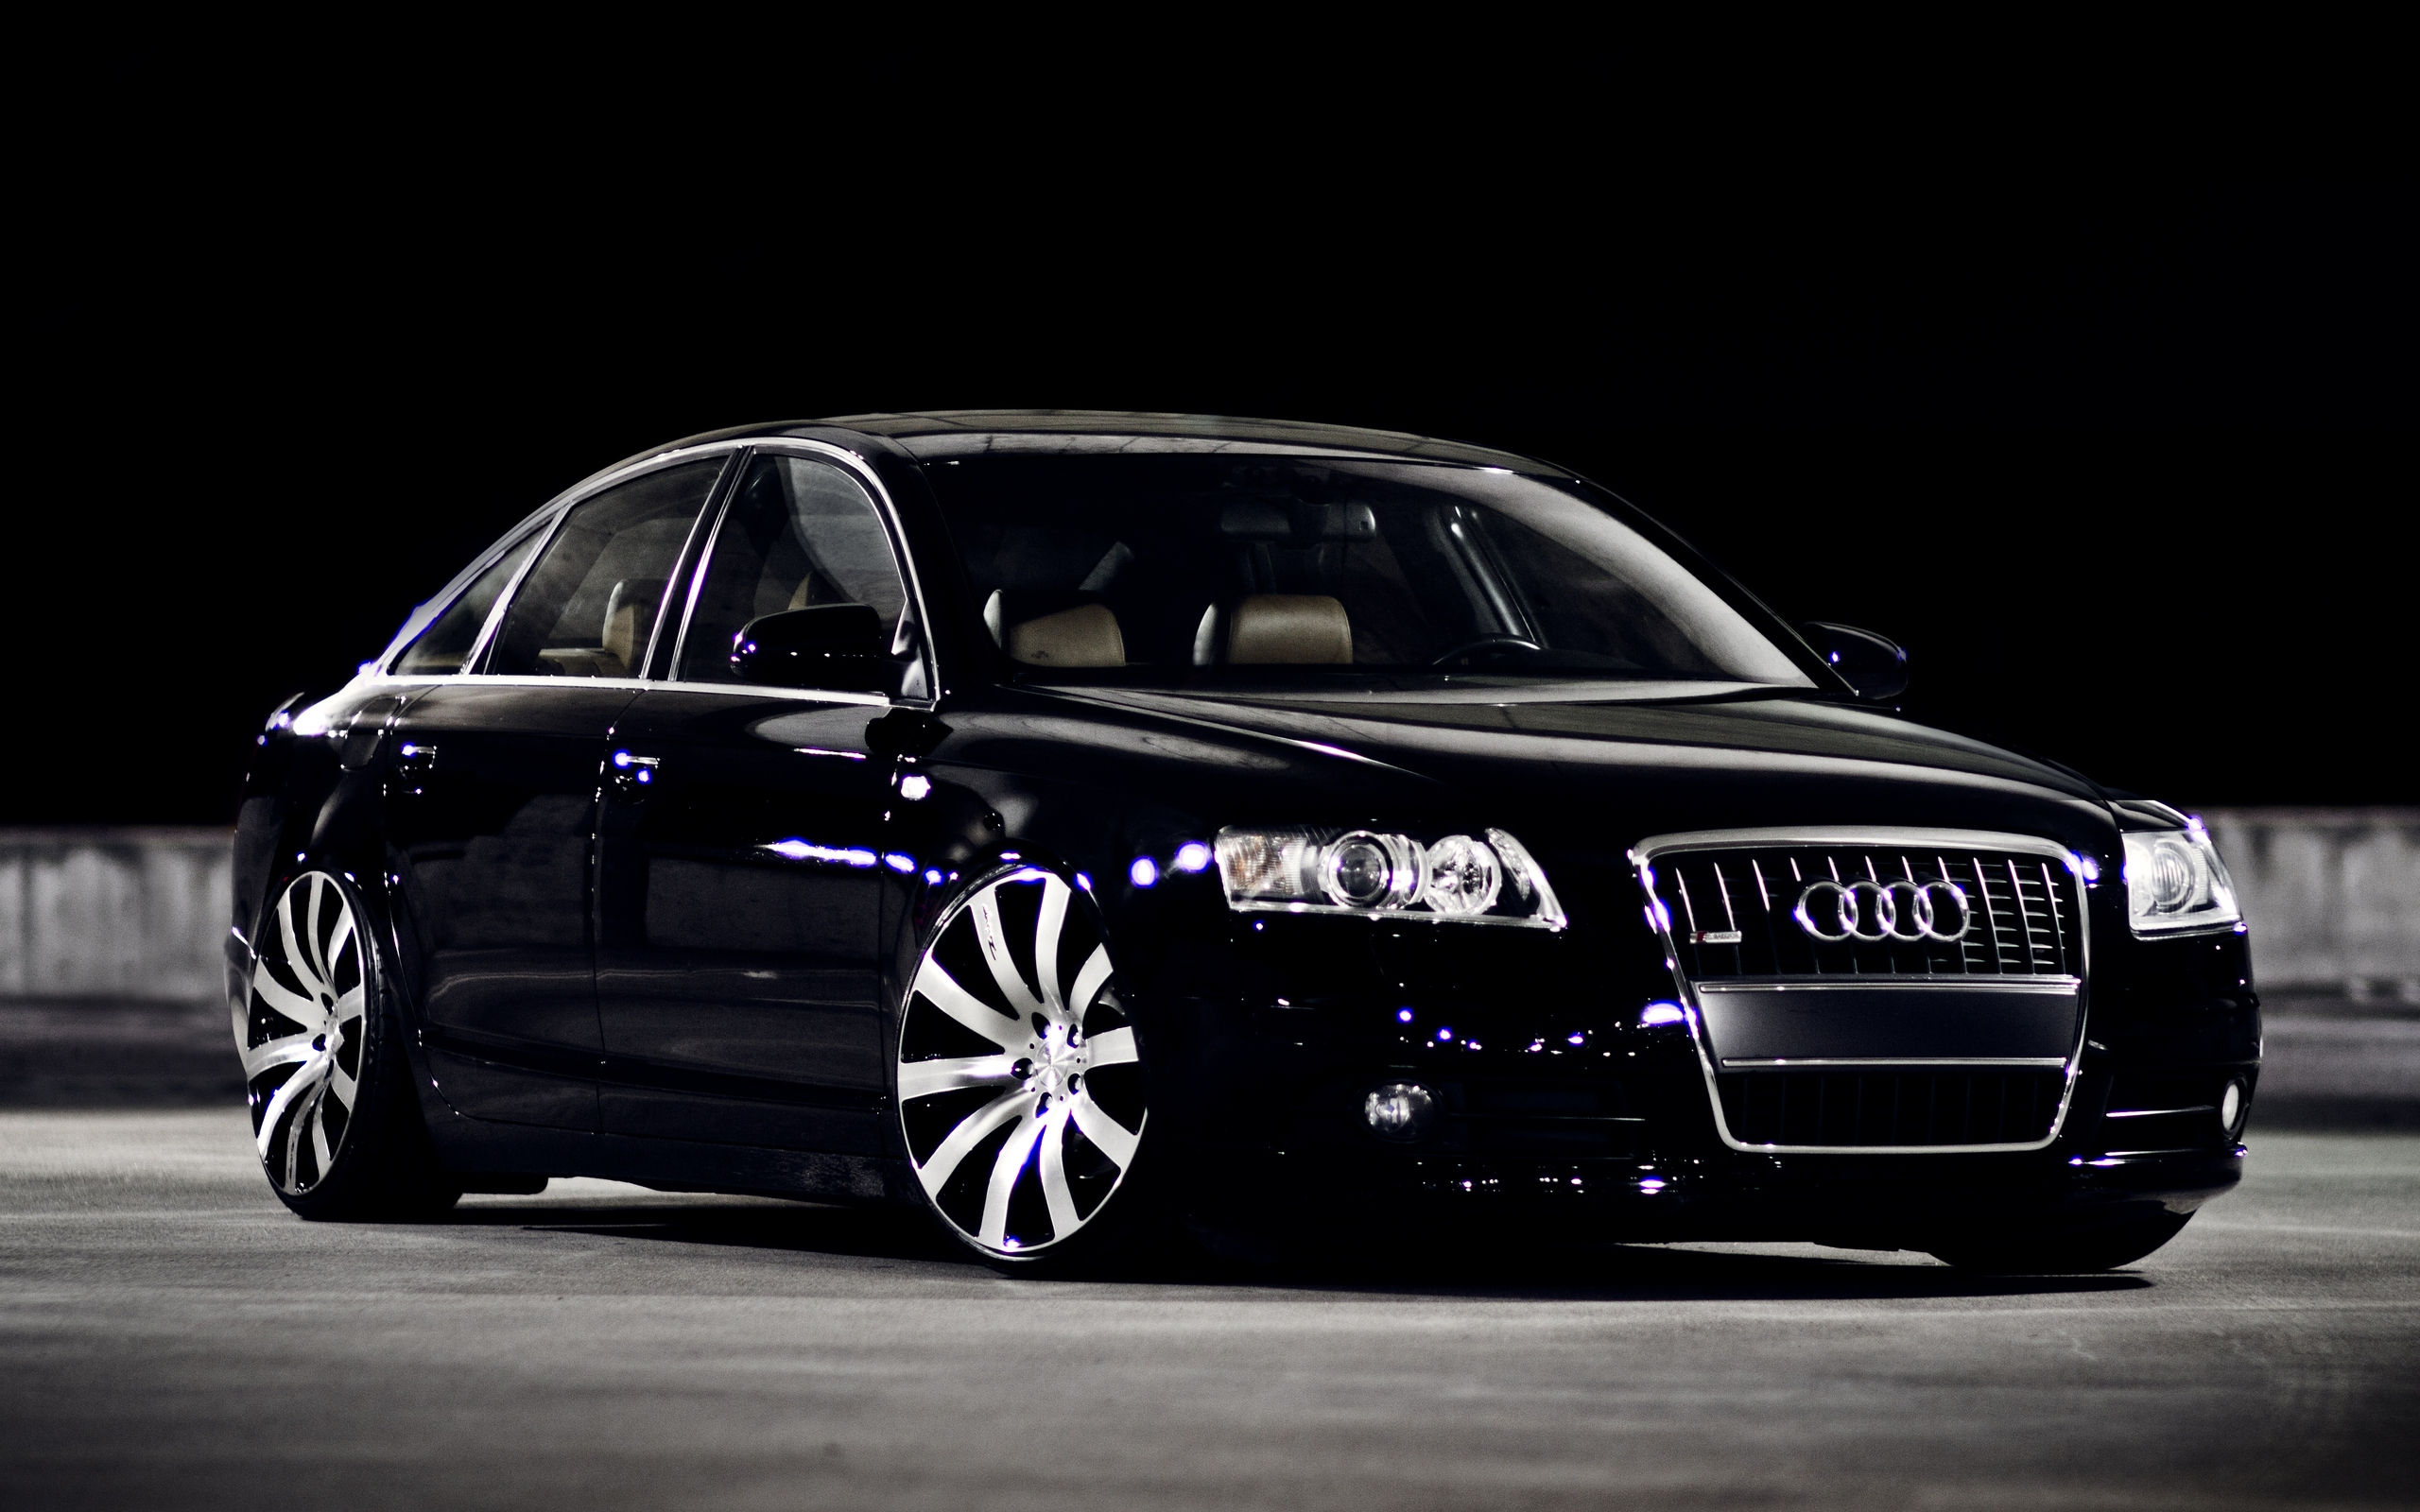 Cool HD Audi Wallpapers For Download 2560x1600